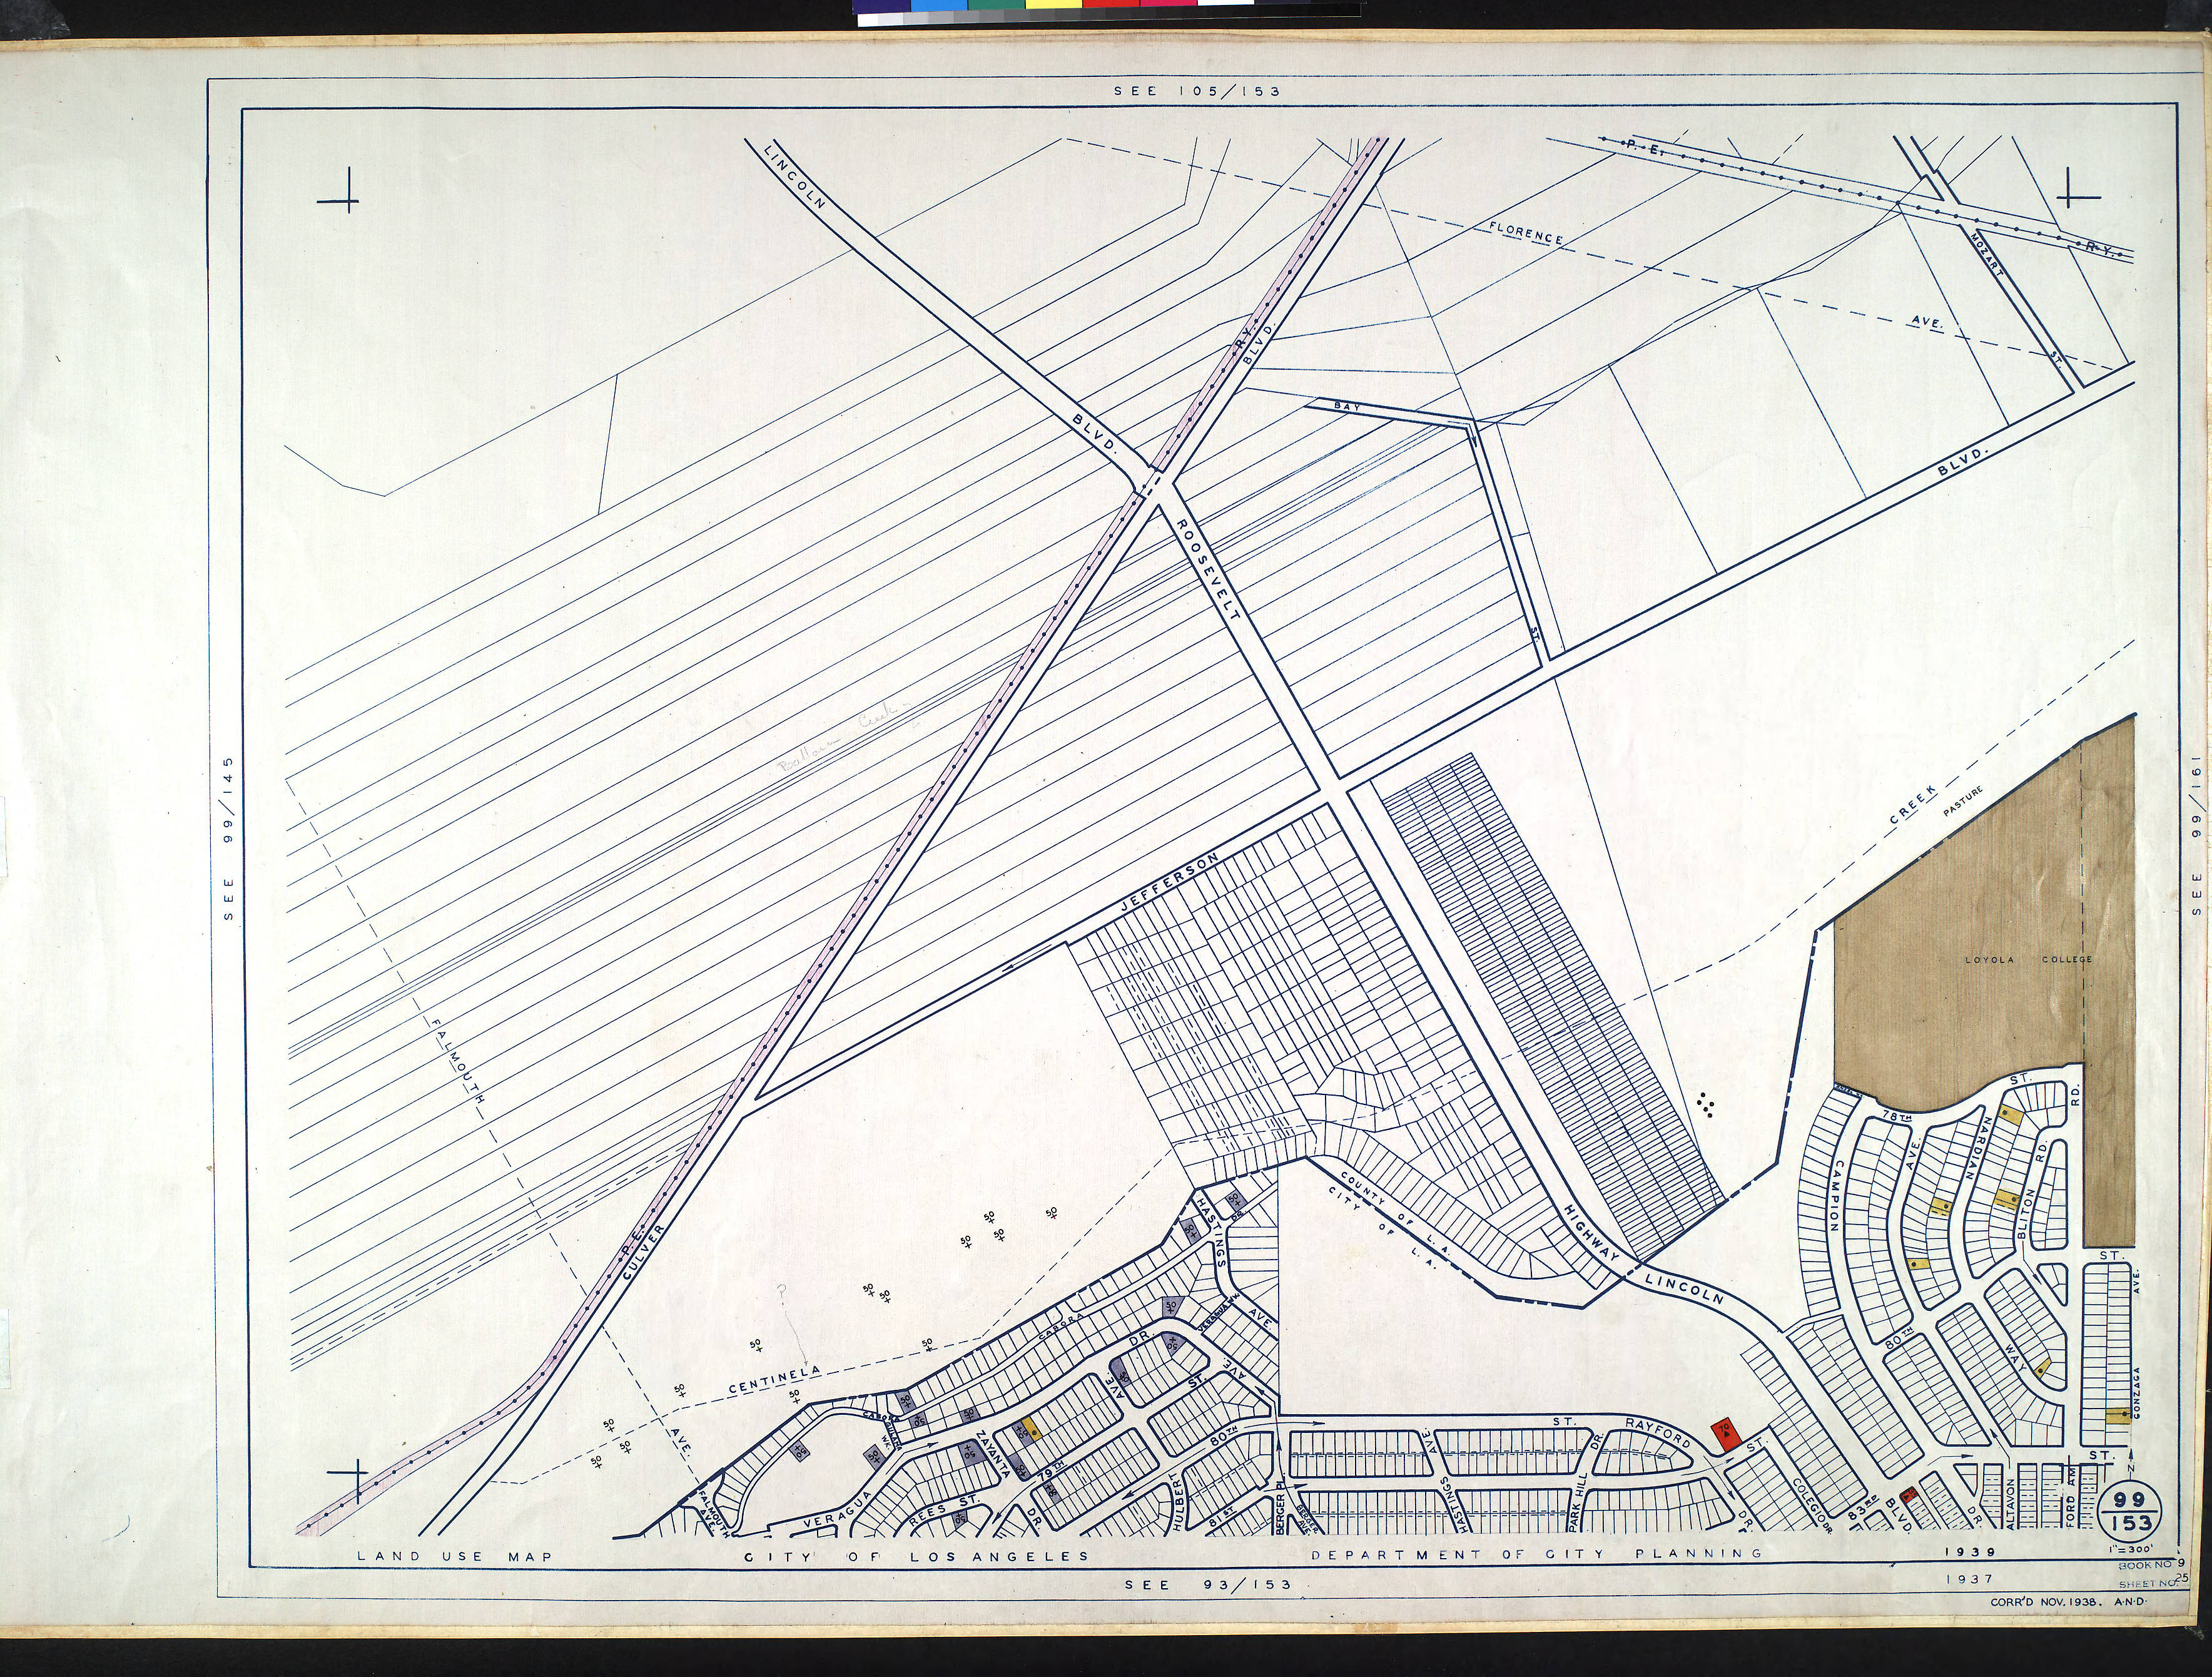 File:WPA Land use survey map for the City of Los Angeles, book 9